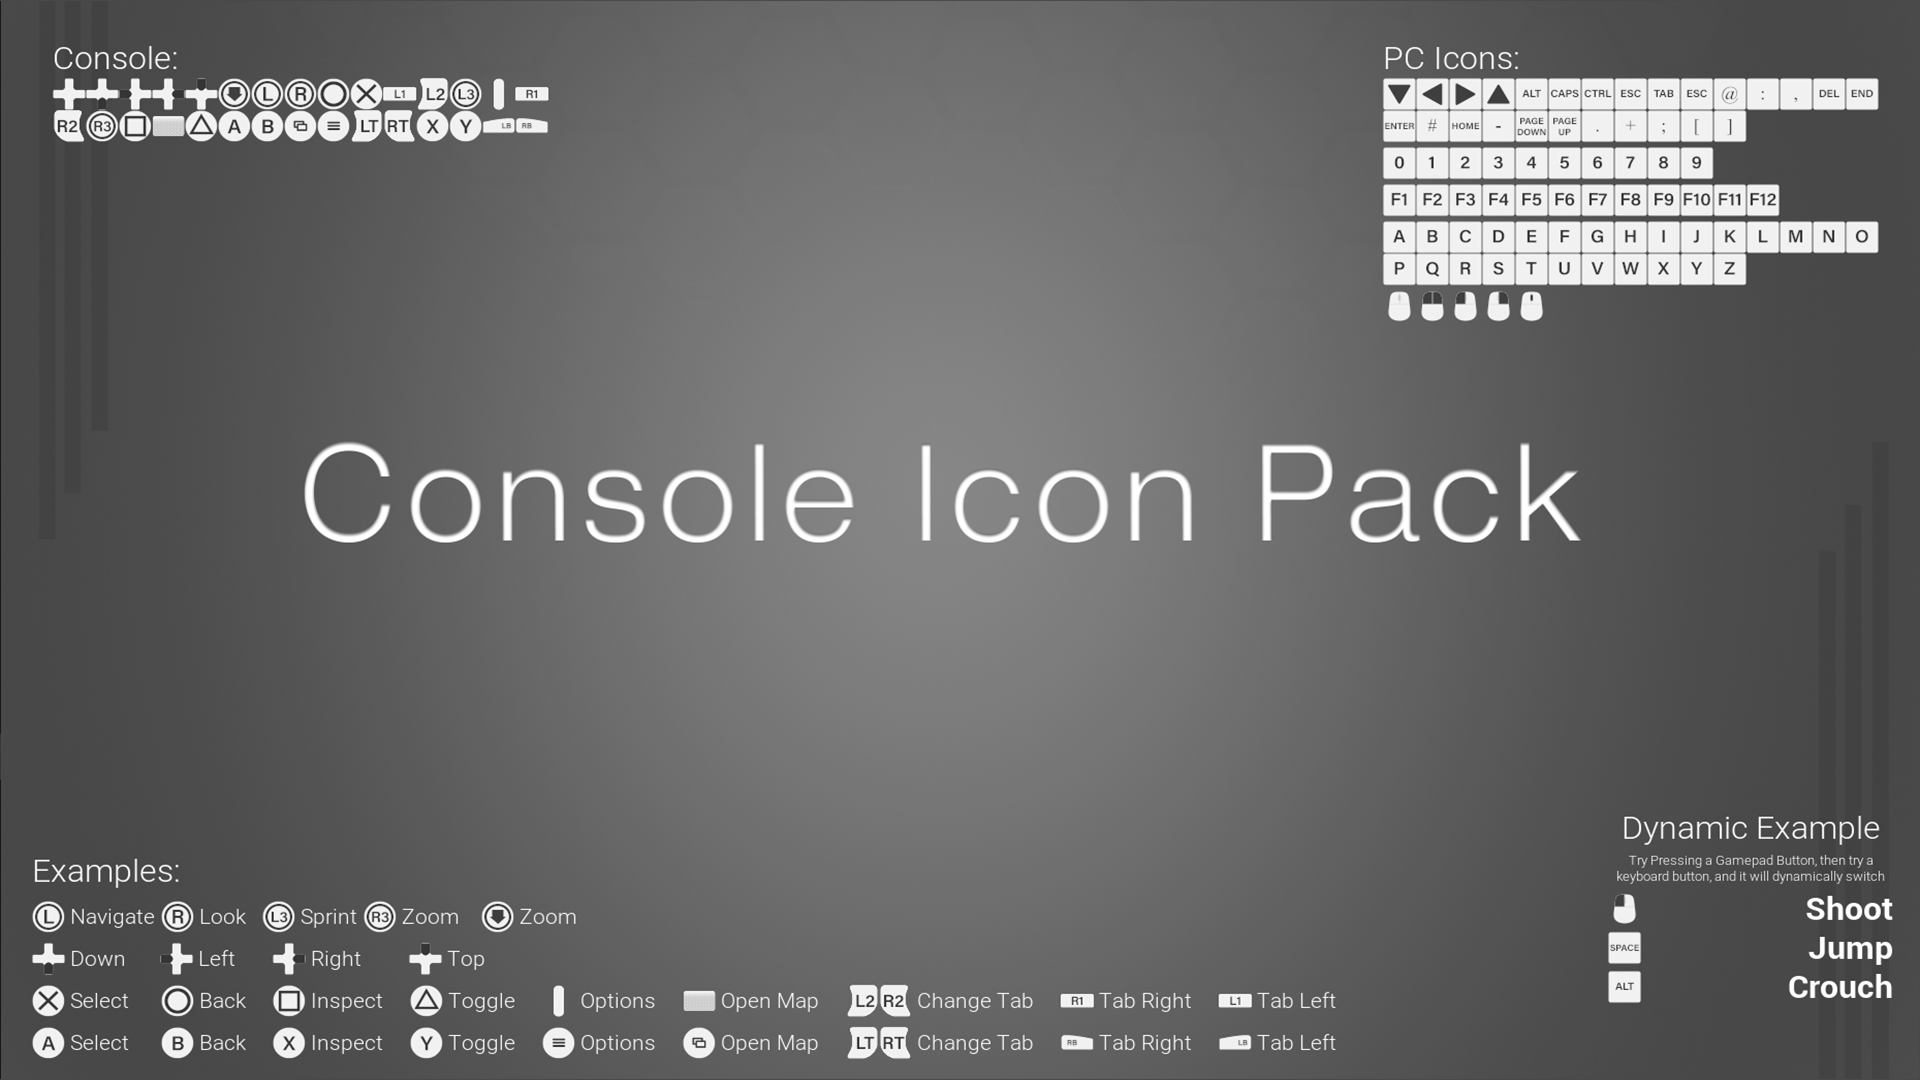 Dynamic Switching PS4/Xbox/PC Icon Pack - 110 Light Themed Icons by